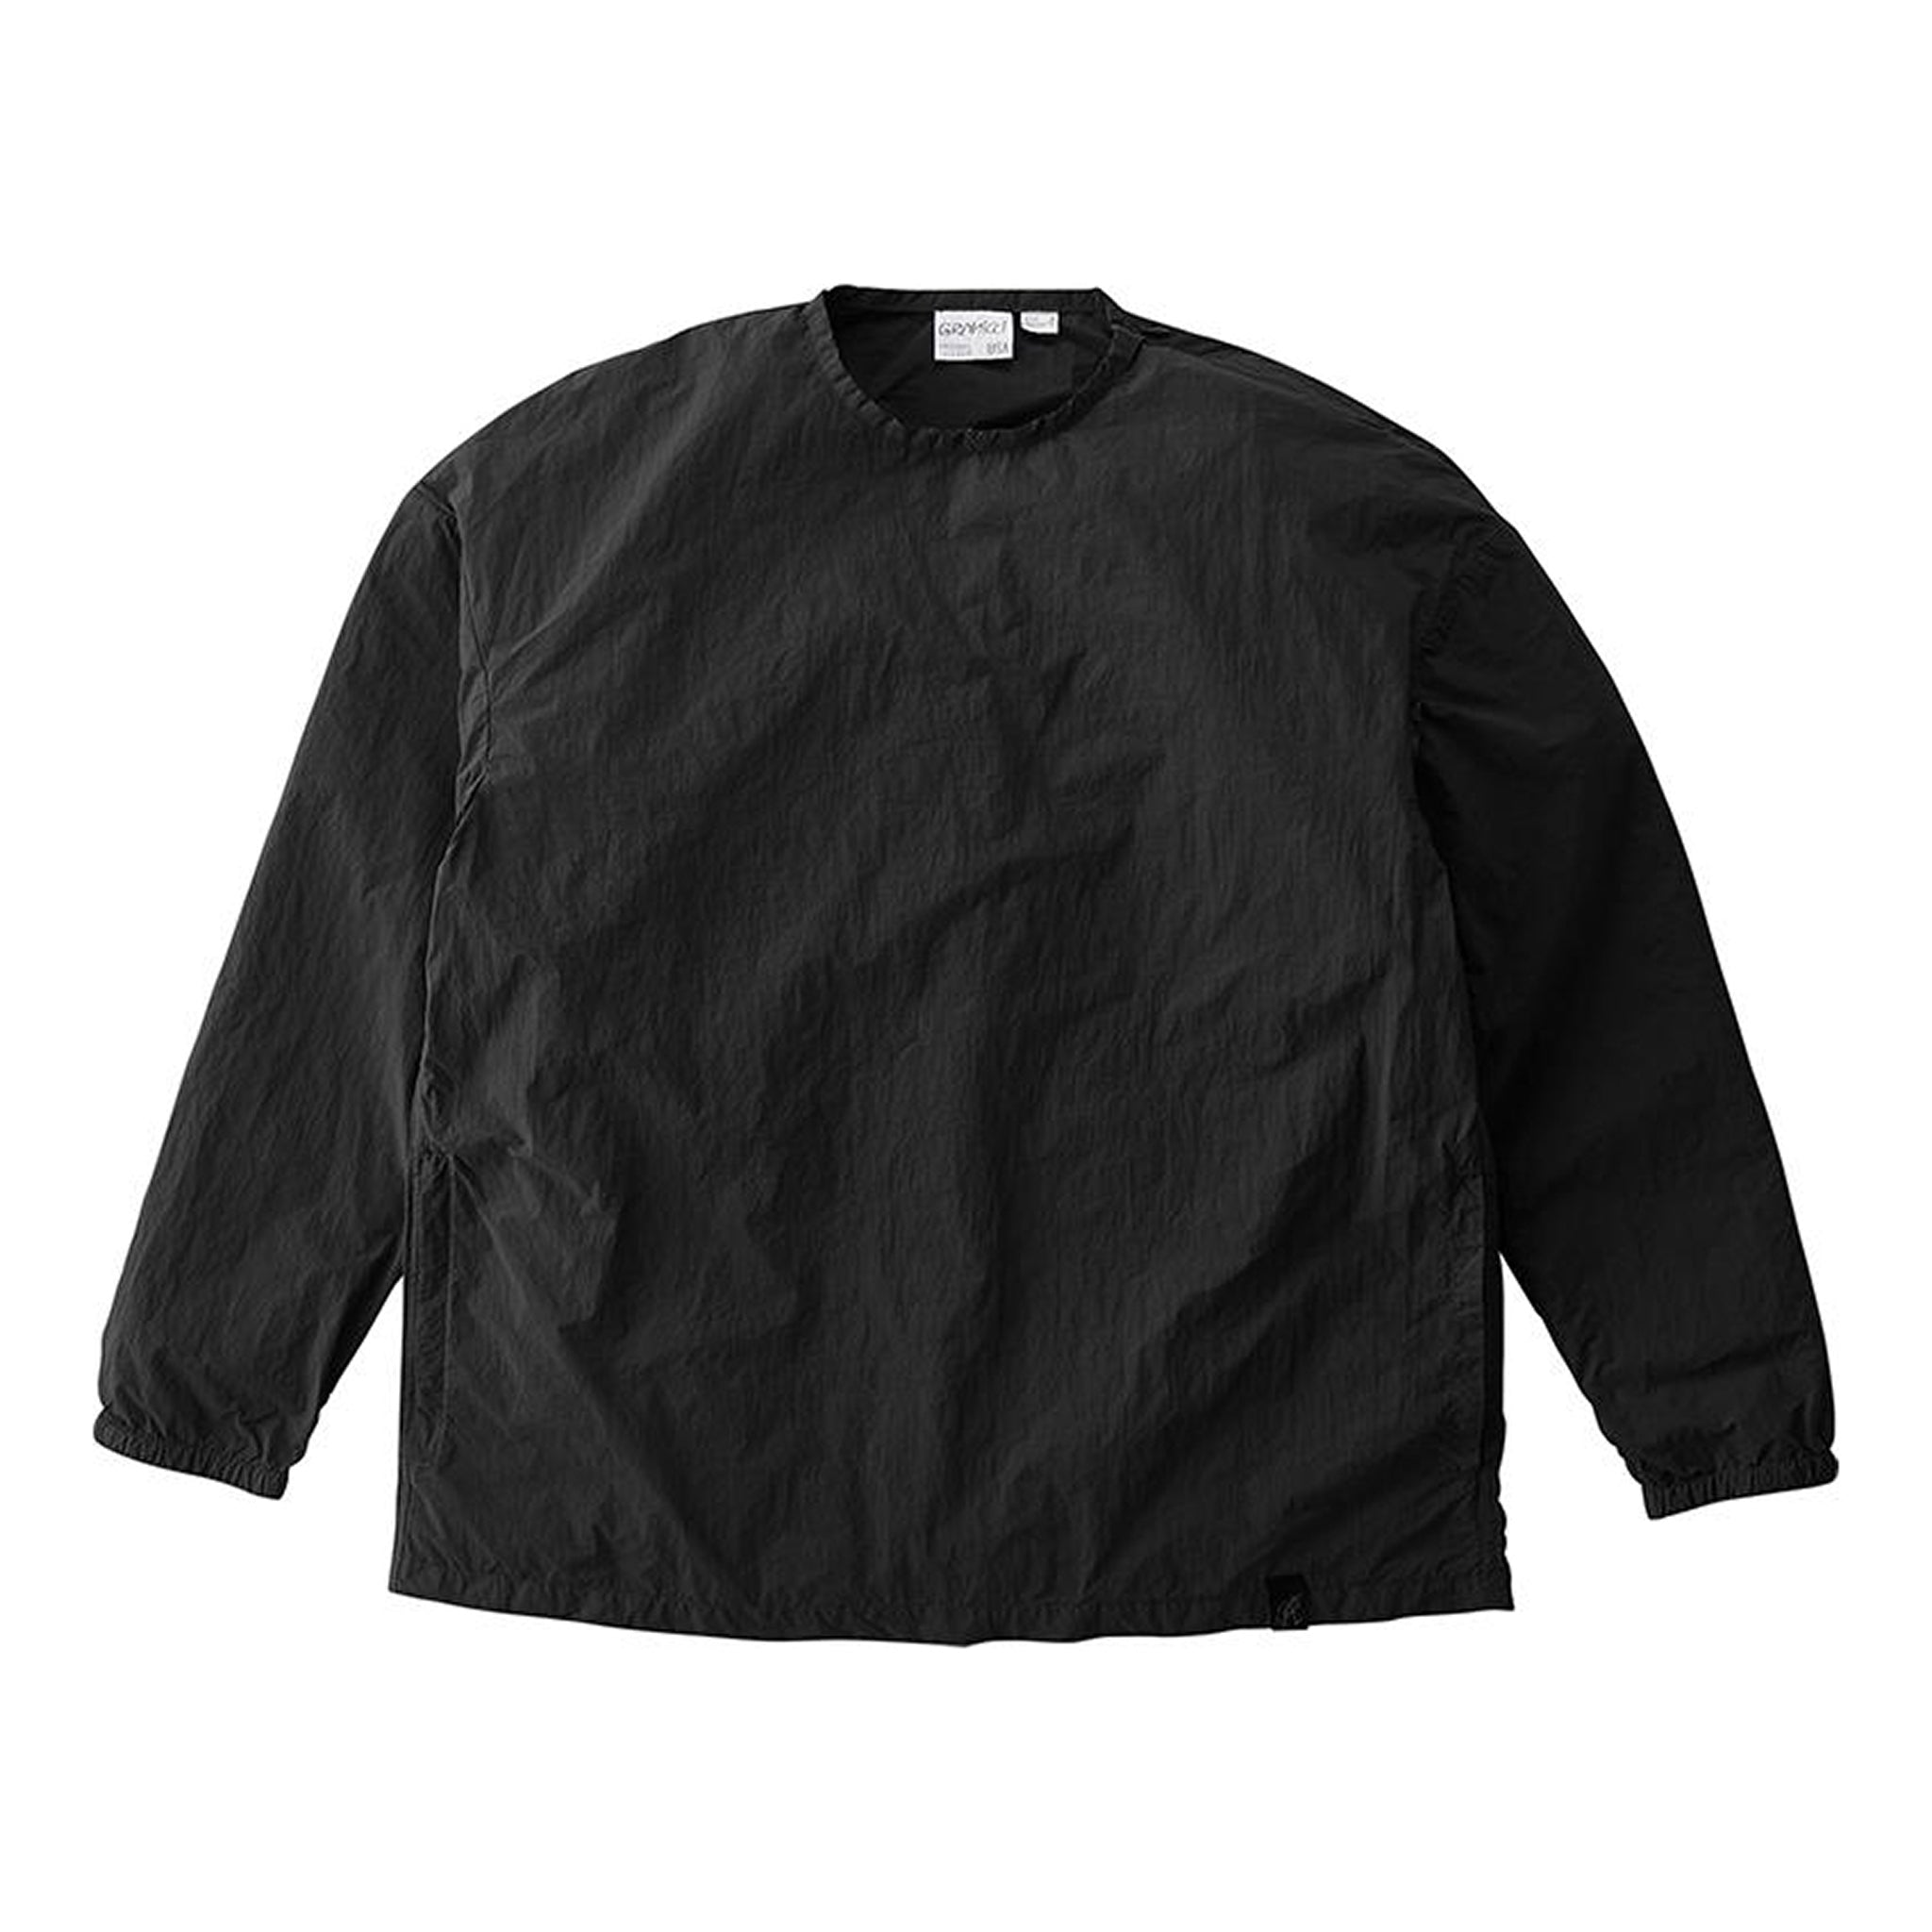 Gramicci Packable Camp Long Sleeve Tee Black